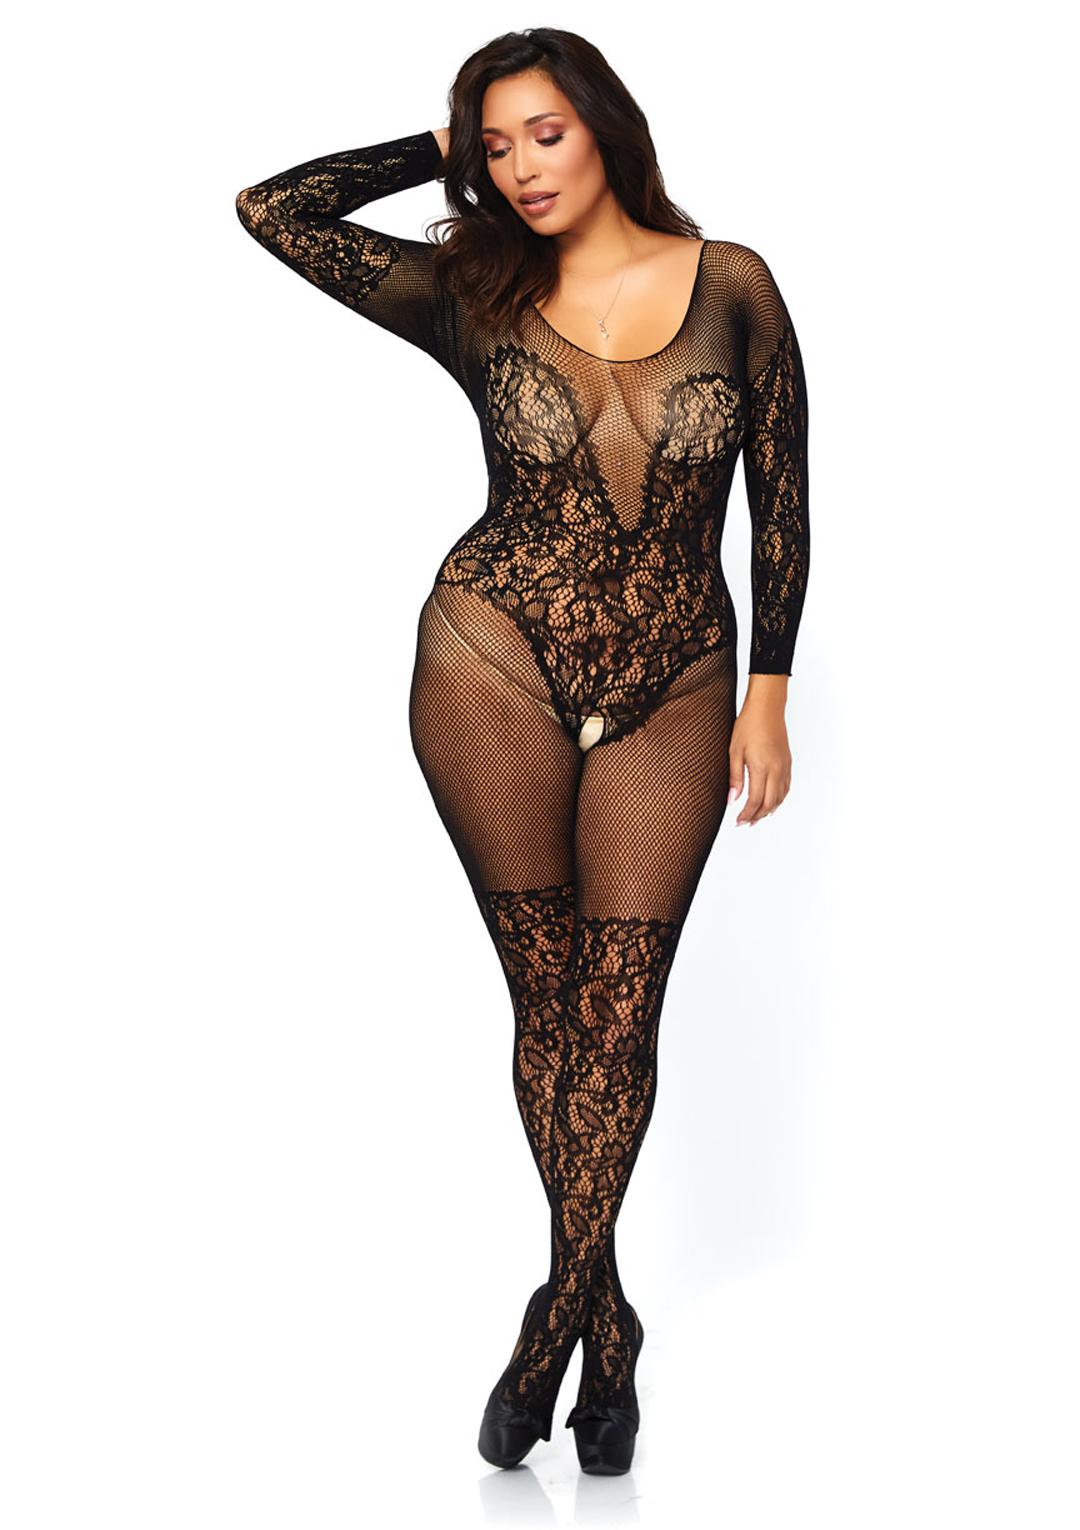 7c31c56f6cc Leg Avenue Vine Lace and Net Long Sleeved Bodystocking Queen Black. About  this product. Stock photo  Picture 1 of 2  Picture 2 of 2